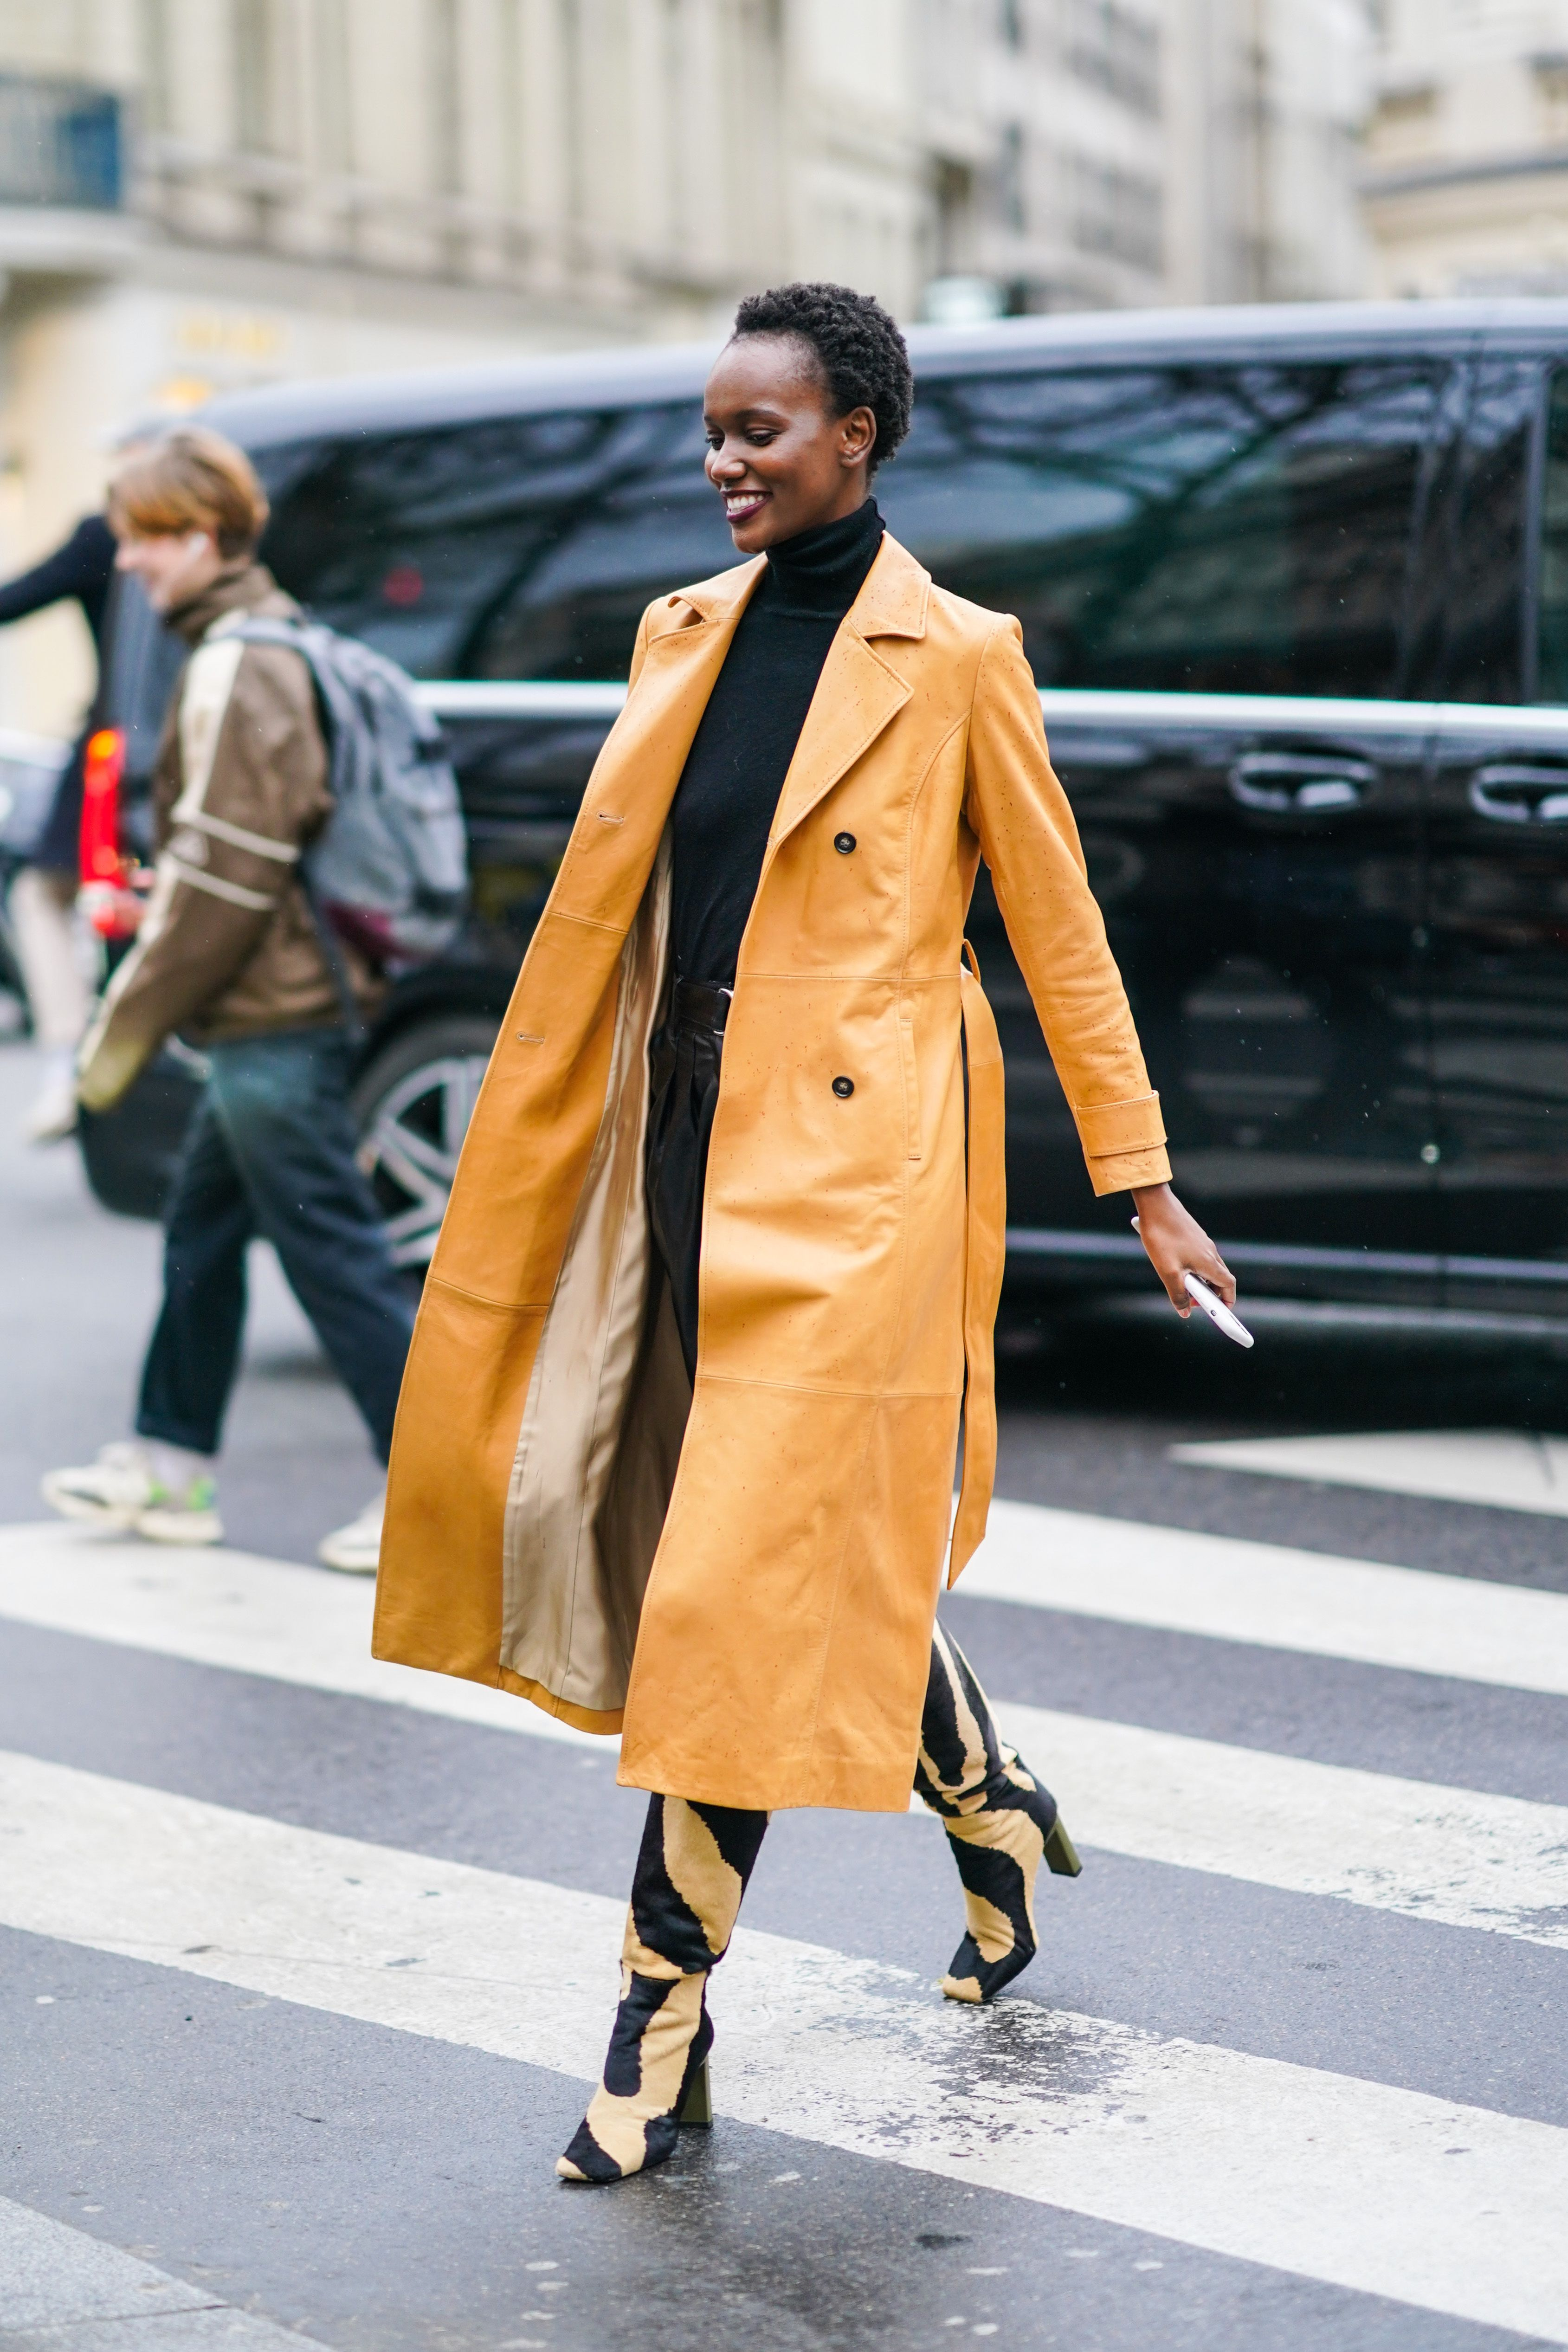 11 of the most stylish trench coats on